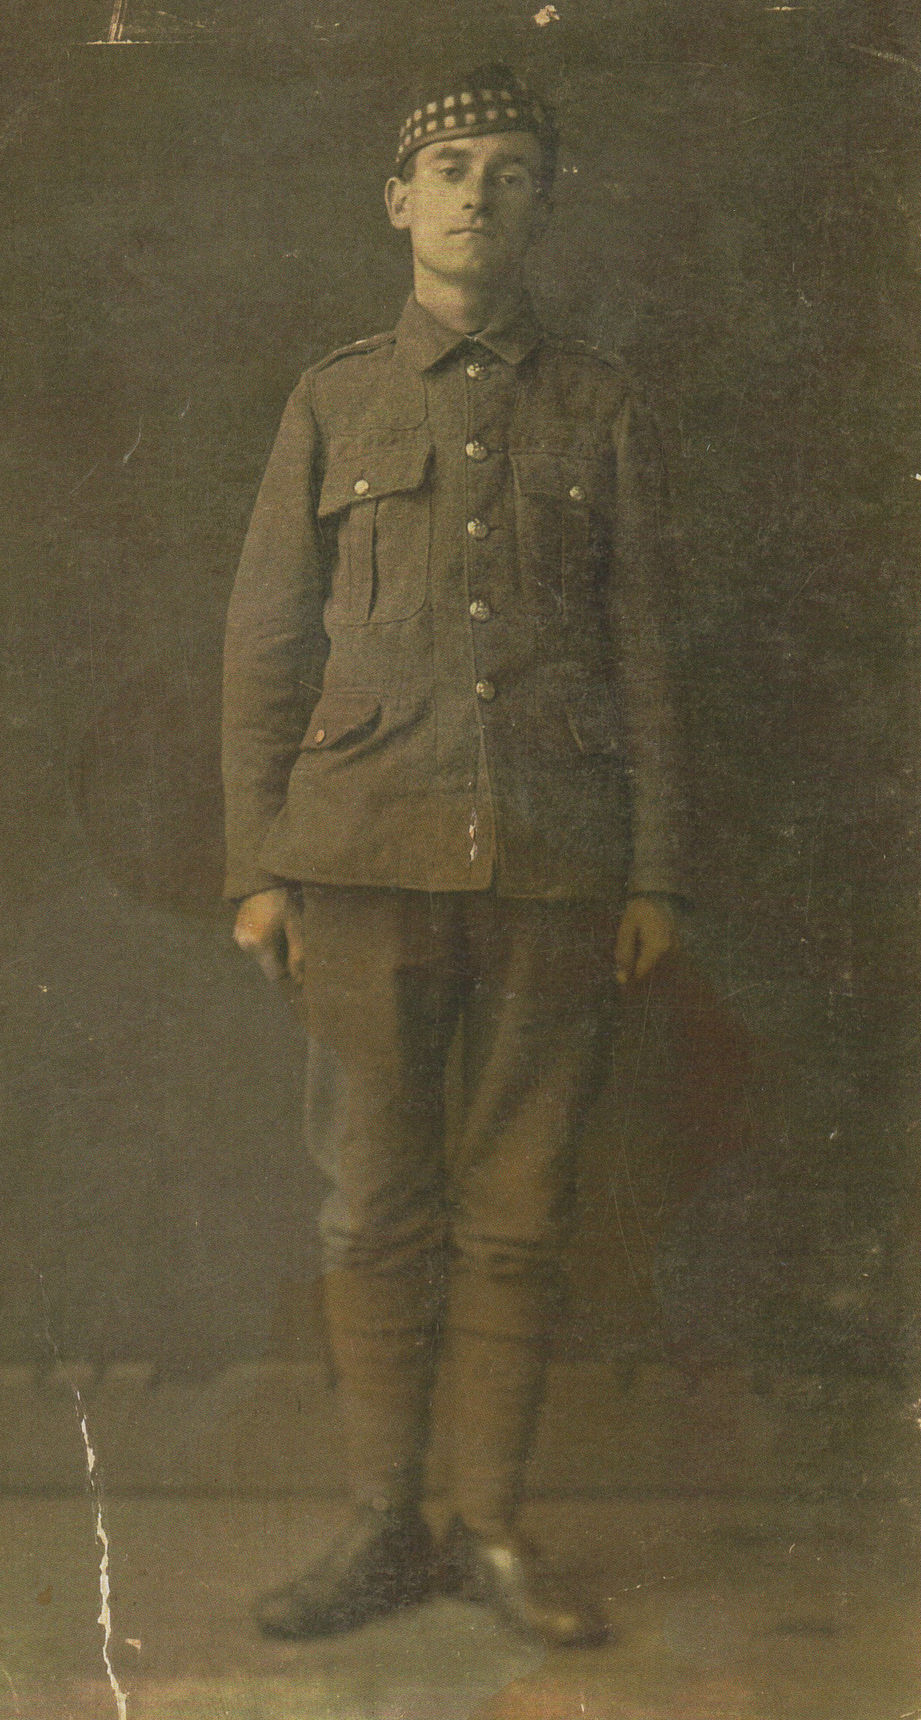 Aged 18 my Grandfather John Shaw is pictured here in his Army Uniform.